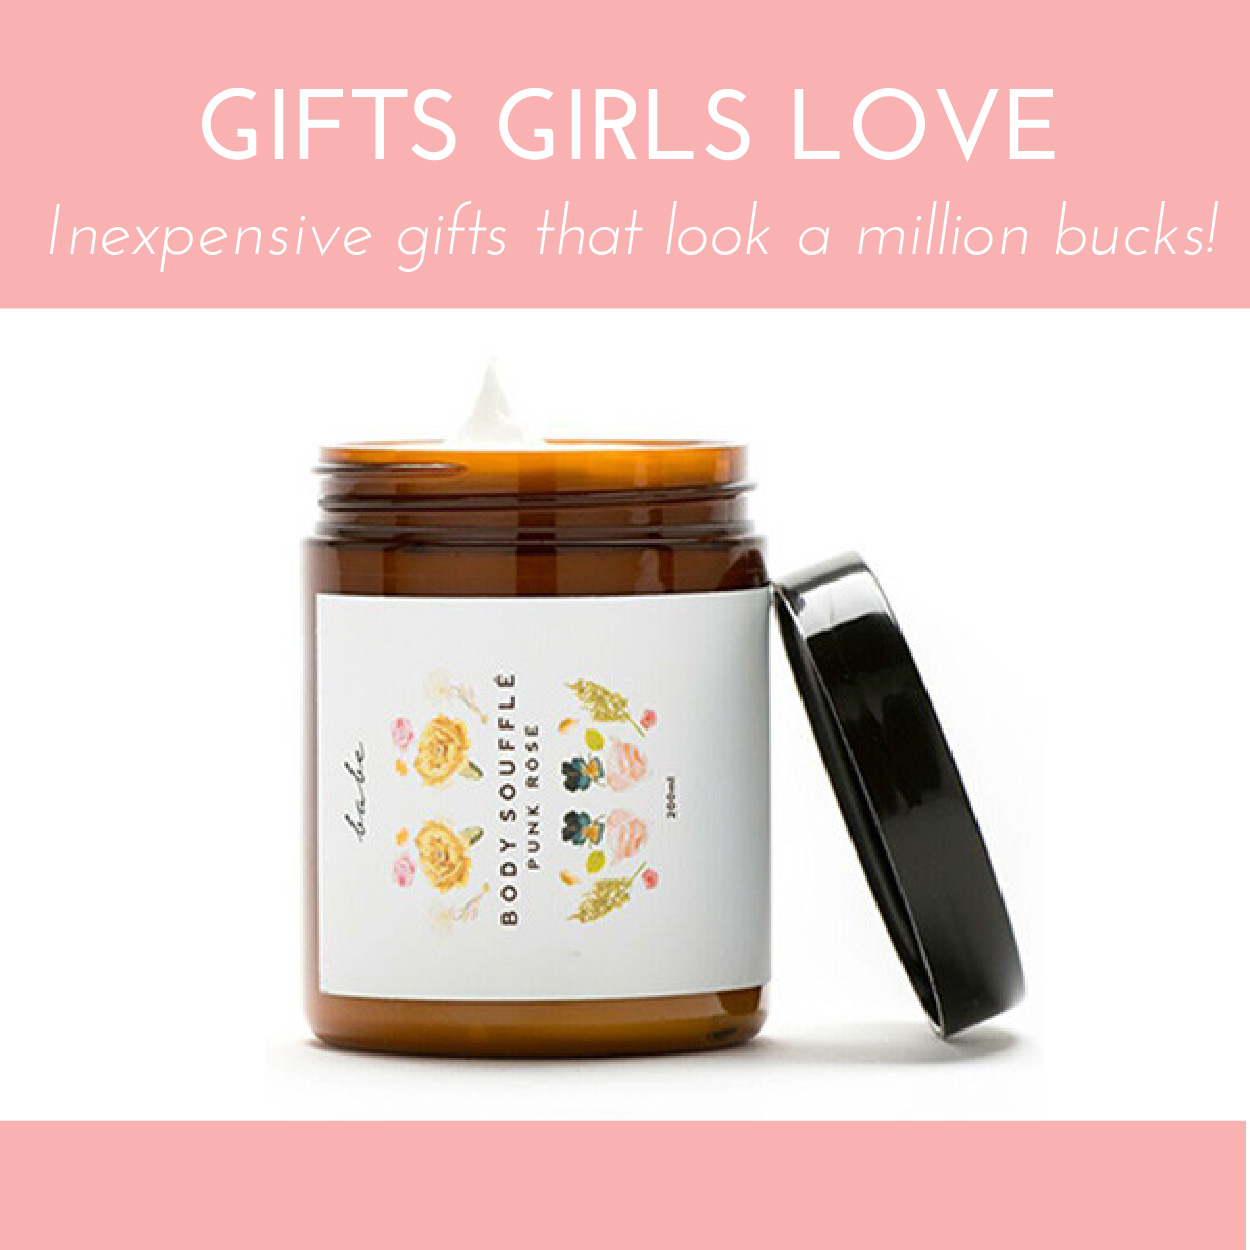 gifts-girls-love-01.jpg